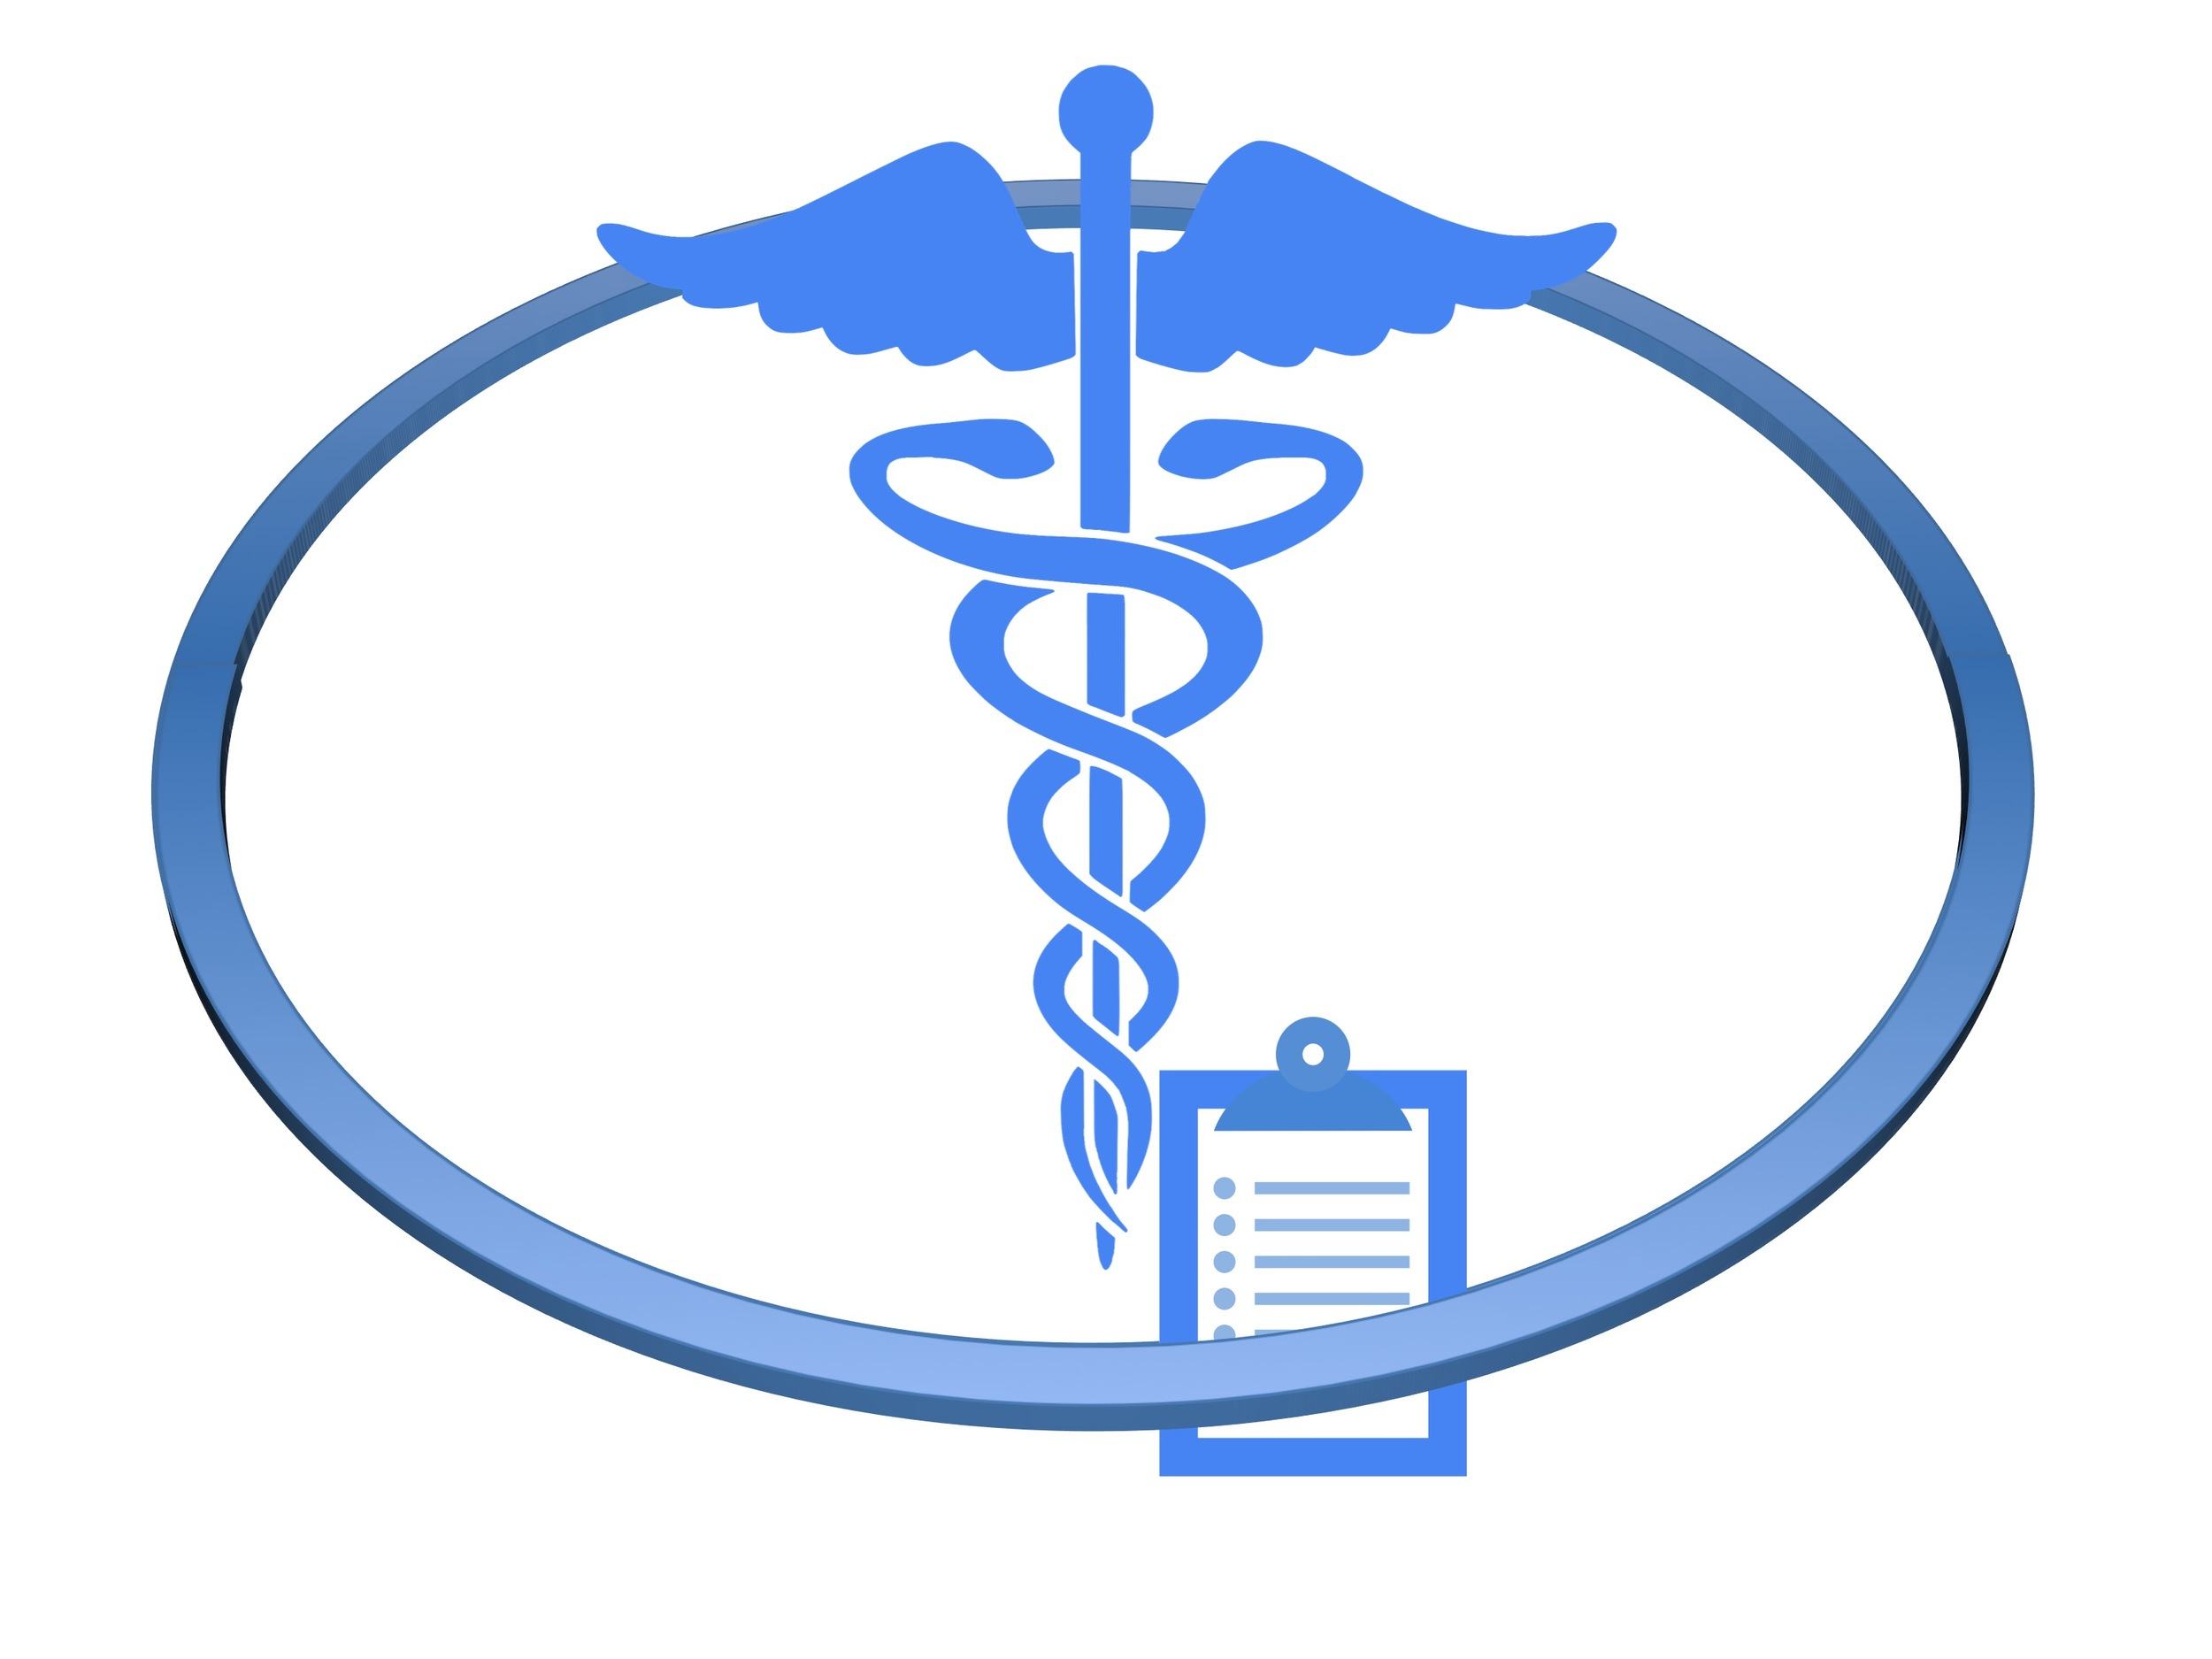 HEALTHCARE - PATIENT EXPERIENCE.HEALTH, WELLBEING -PATIENTS, FAMILIES, VOLUNTEERS, MEDICAL STAFF. CLINICAL INNOVATIONS. EFFECTIVE MEDICAL INFOFRMATION SHARING,COLLABORATION.